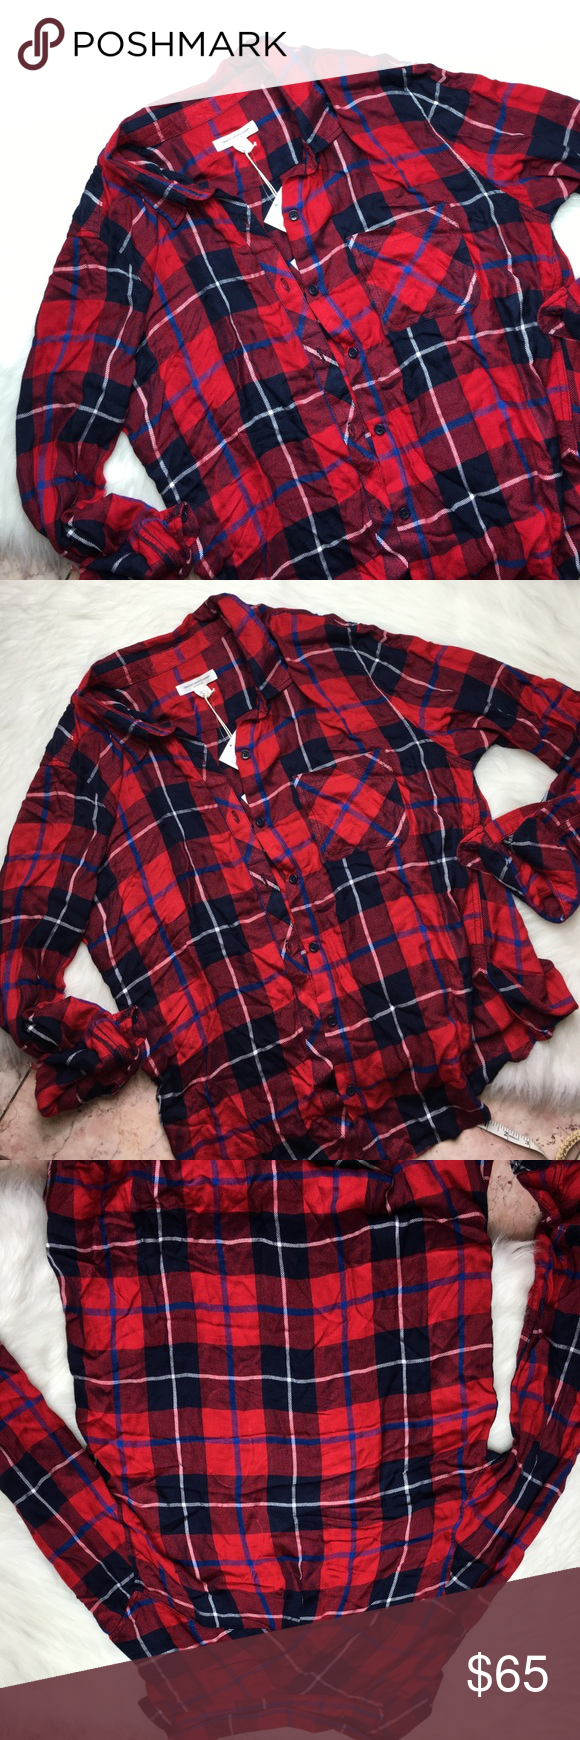 Red flannel shirts  Beach lunch lounge red flannel shirt size l nwt  Beach lunch Red